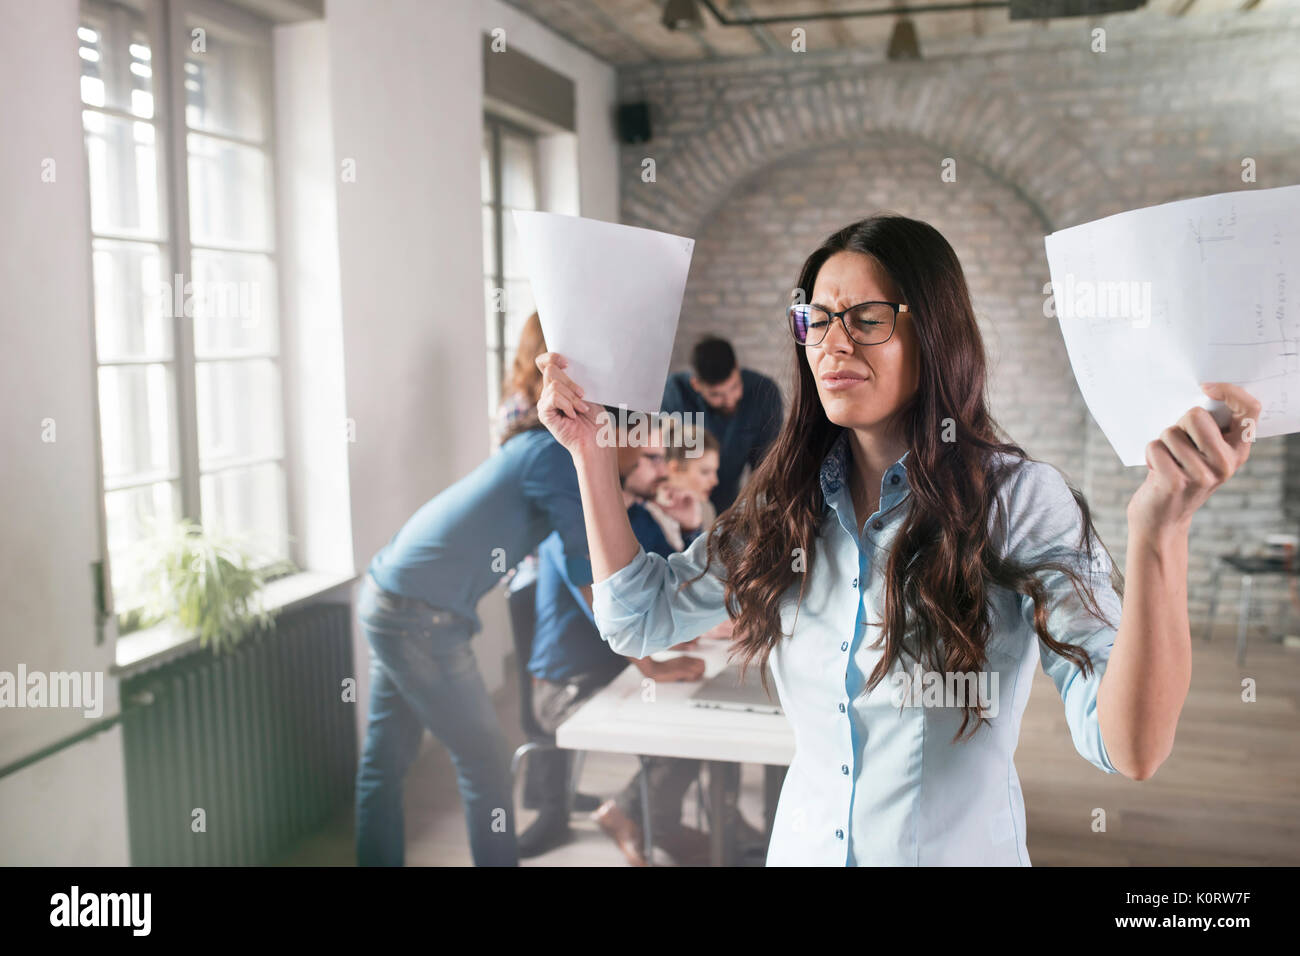 Photo de young angry woman in office Photo Stock